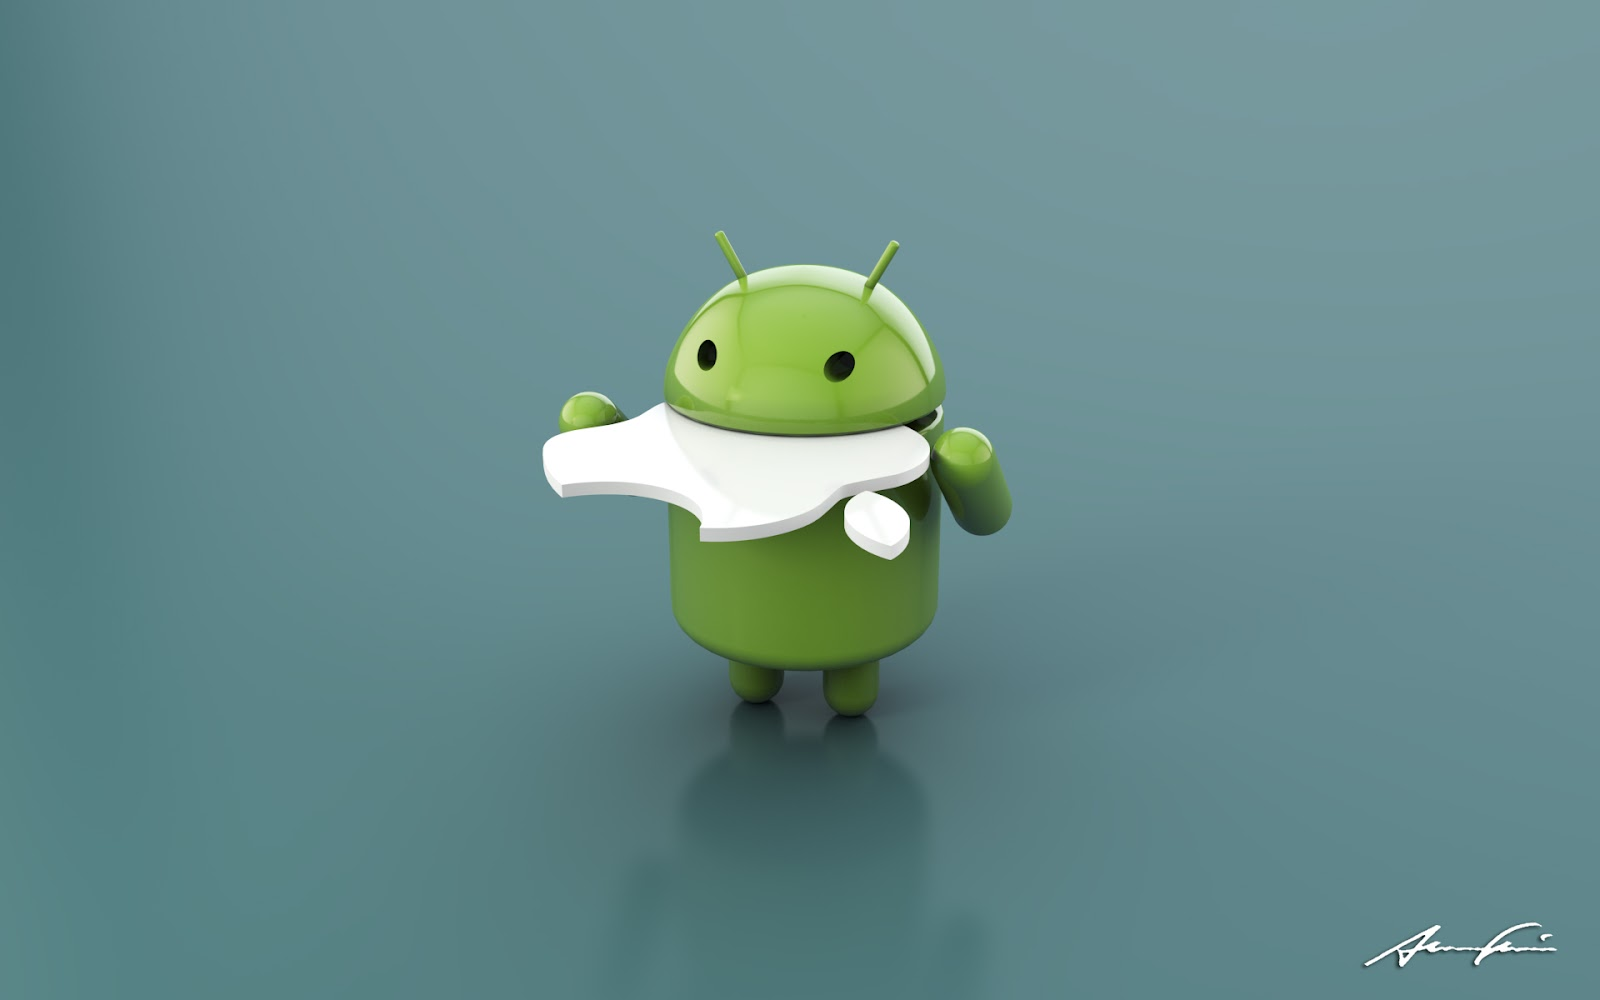 android wallpapers hd apple android wallpapers hd android wallpapers ...